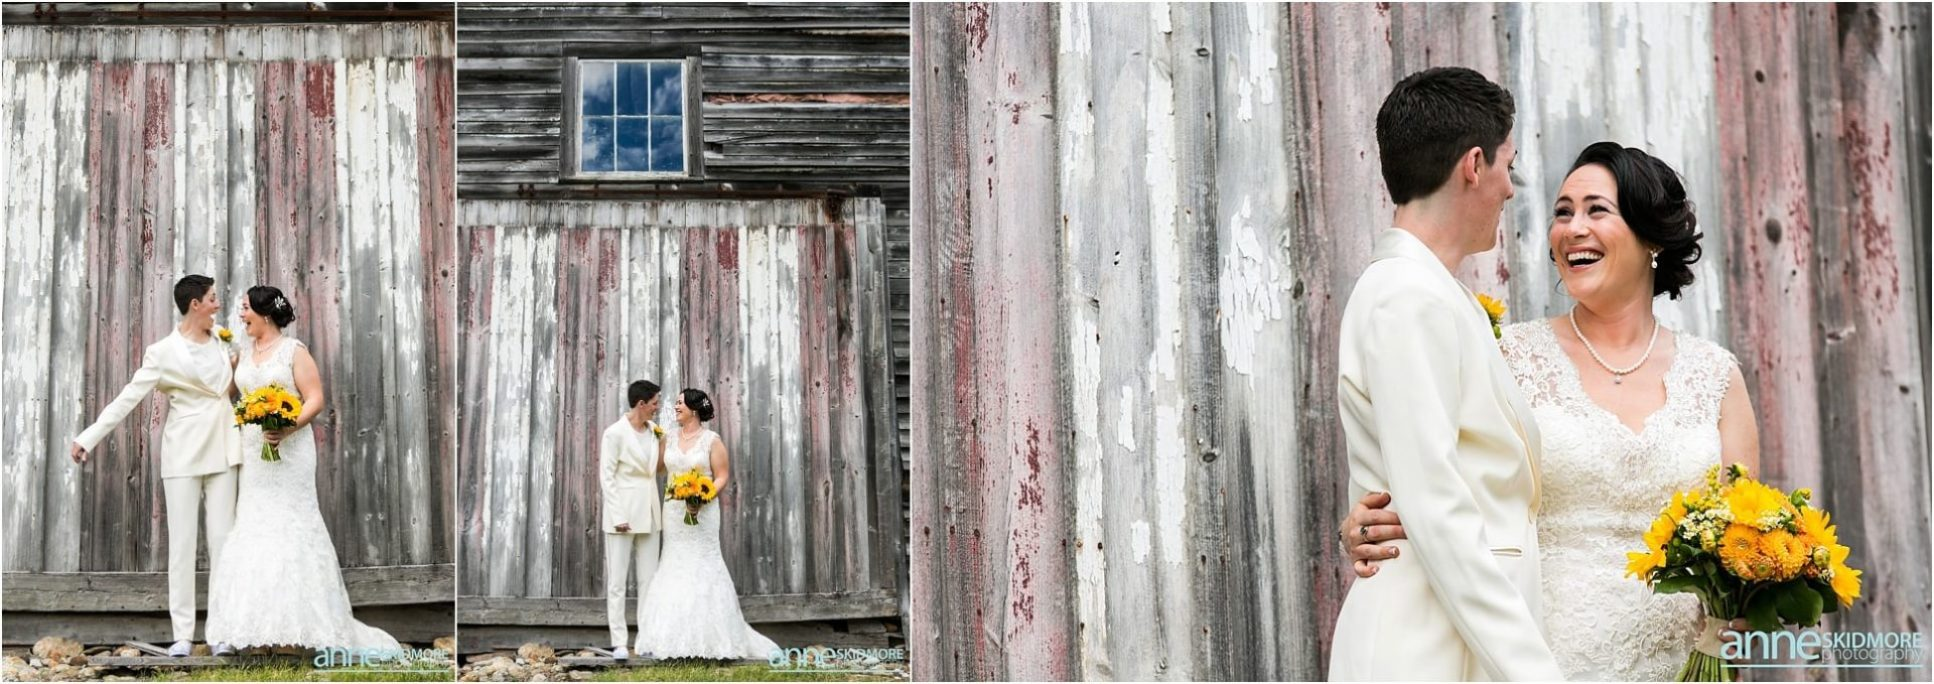 Eagle_Mountain_House_Wedding__048